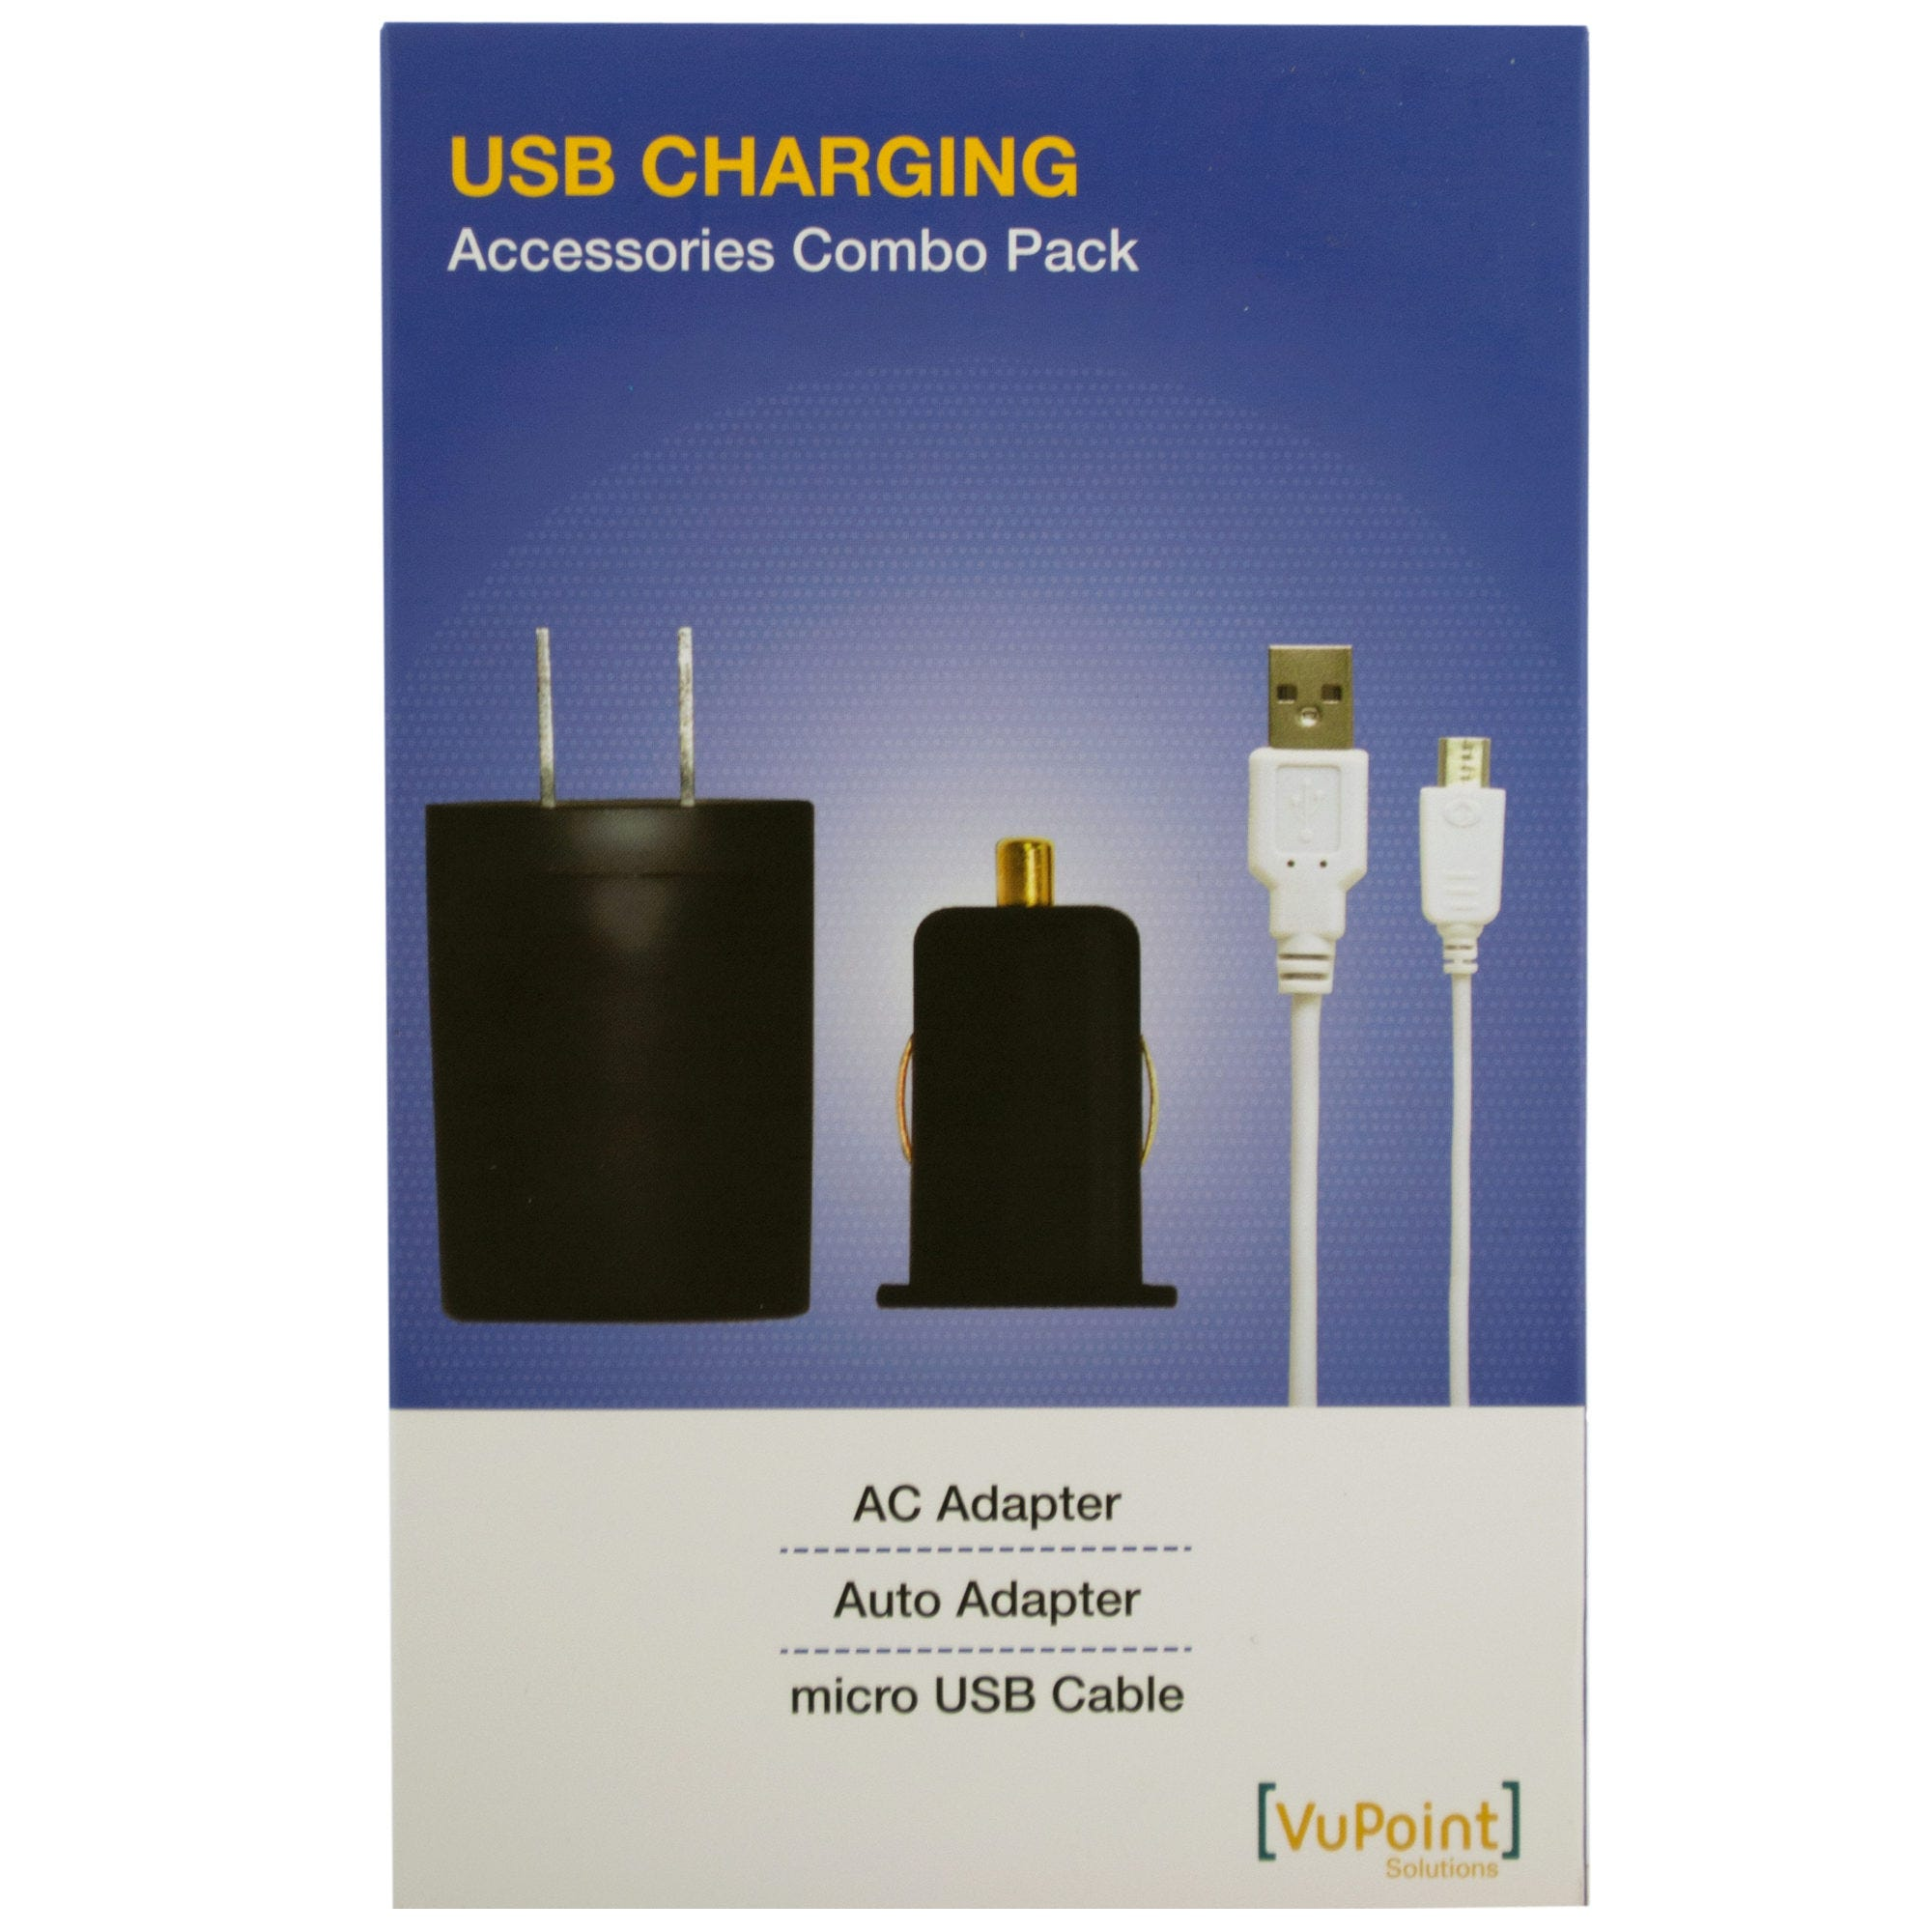 usb-charging-accessories-combo-pack